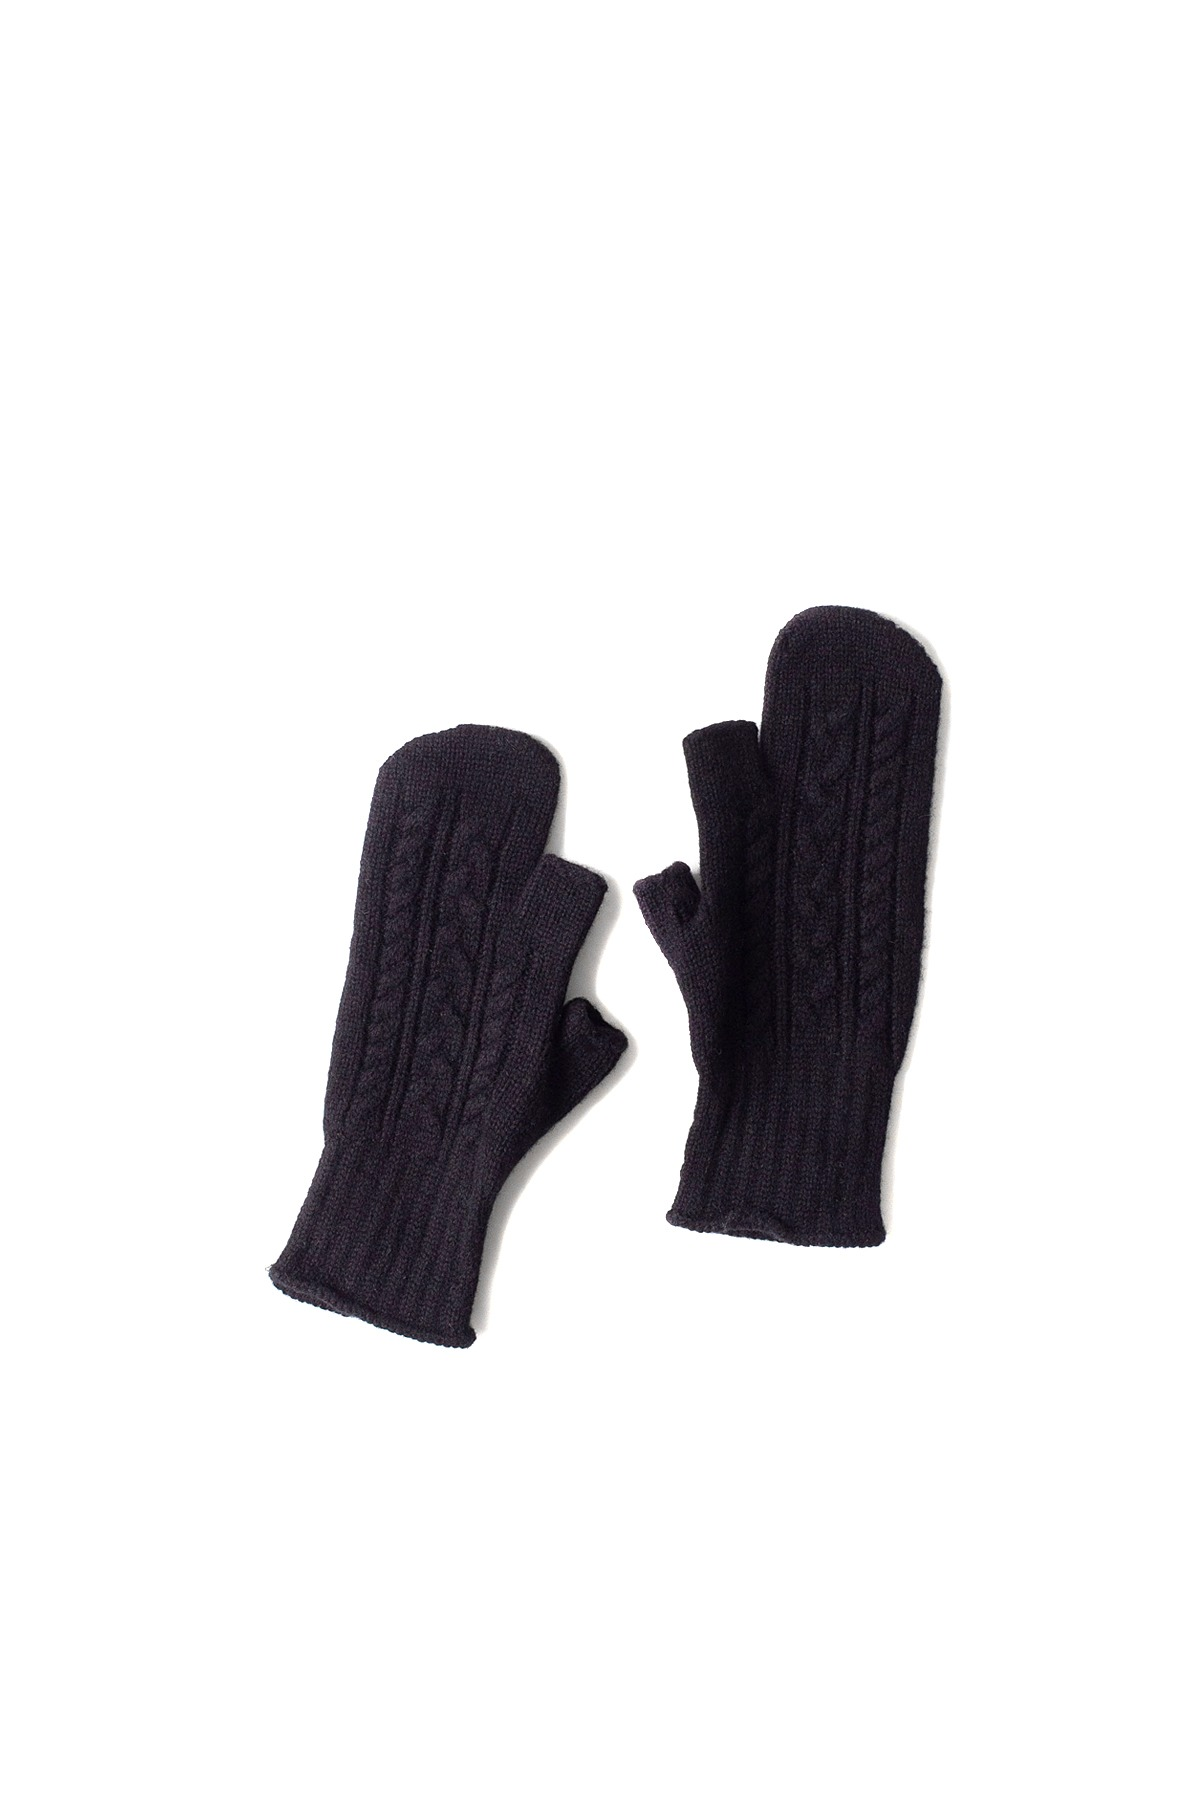 Eastlogue :  Rifle Gloves (Black)